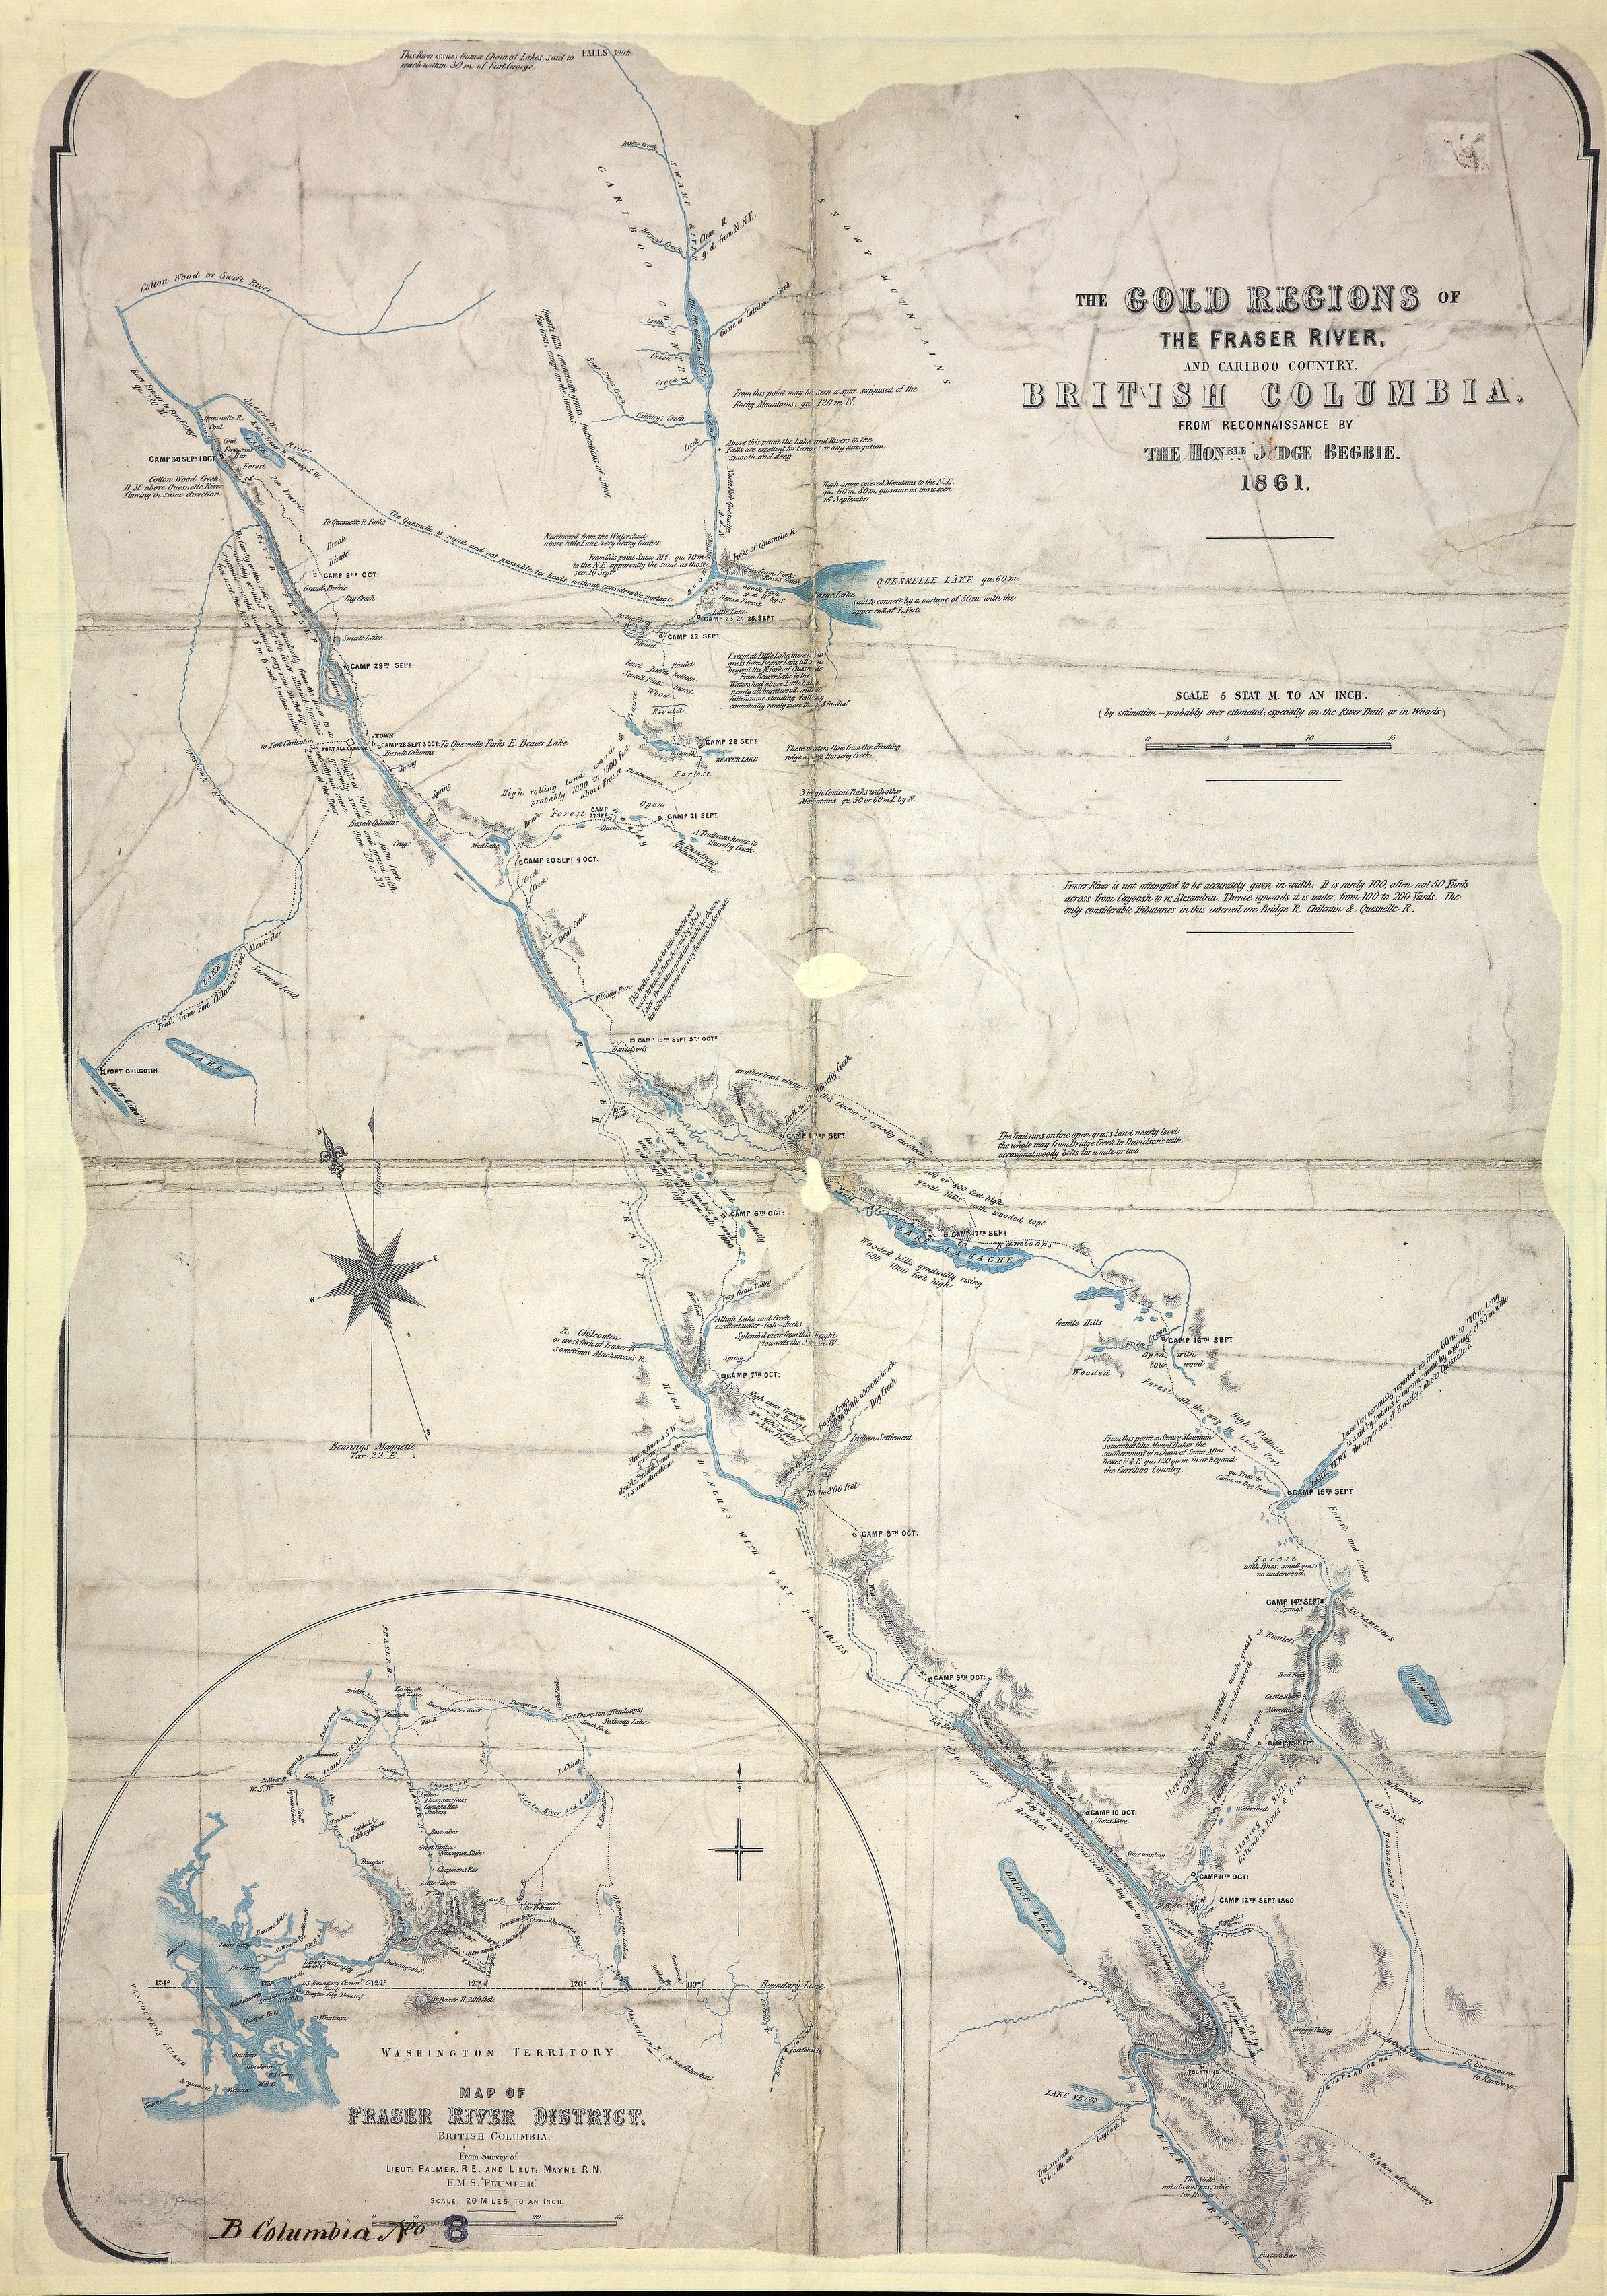 Gold Regions of the Fraser River and Cariboo Country, British Columbia, from reconnaissance by the Honourable Judge Begbie, 1861.